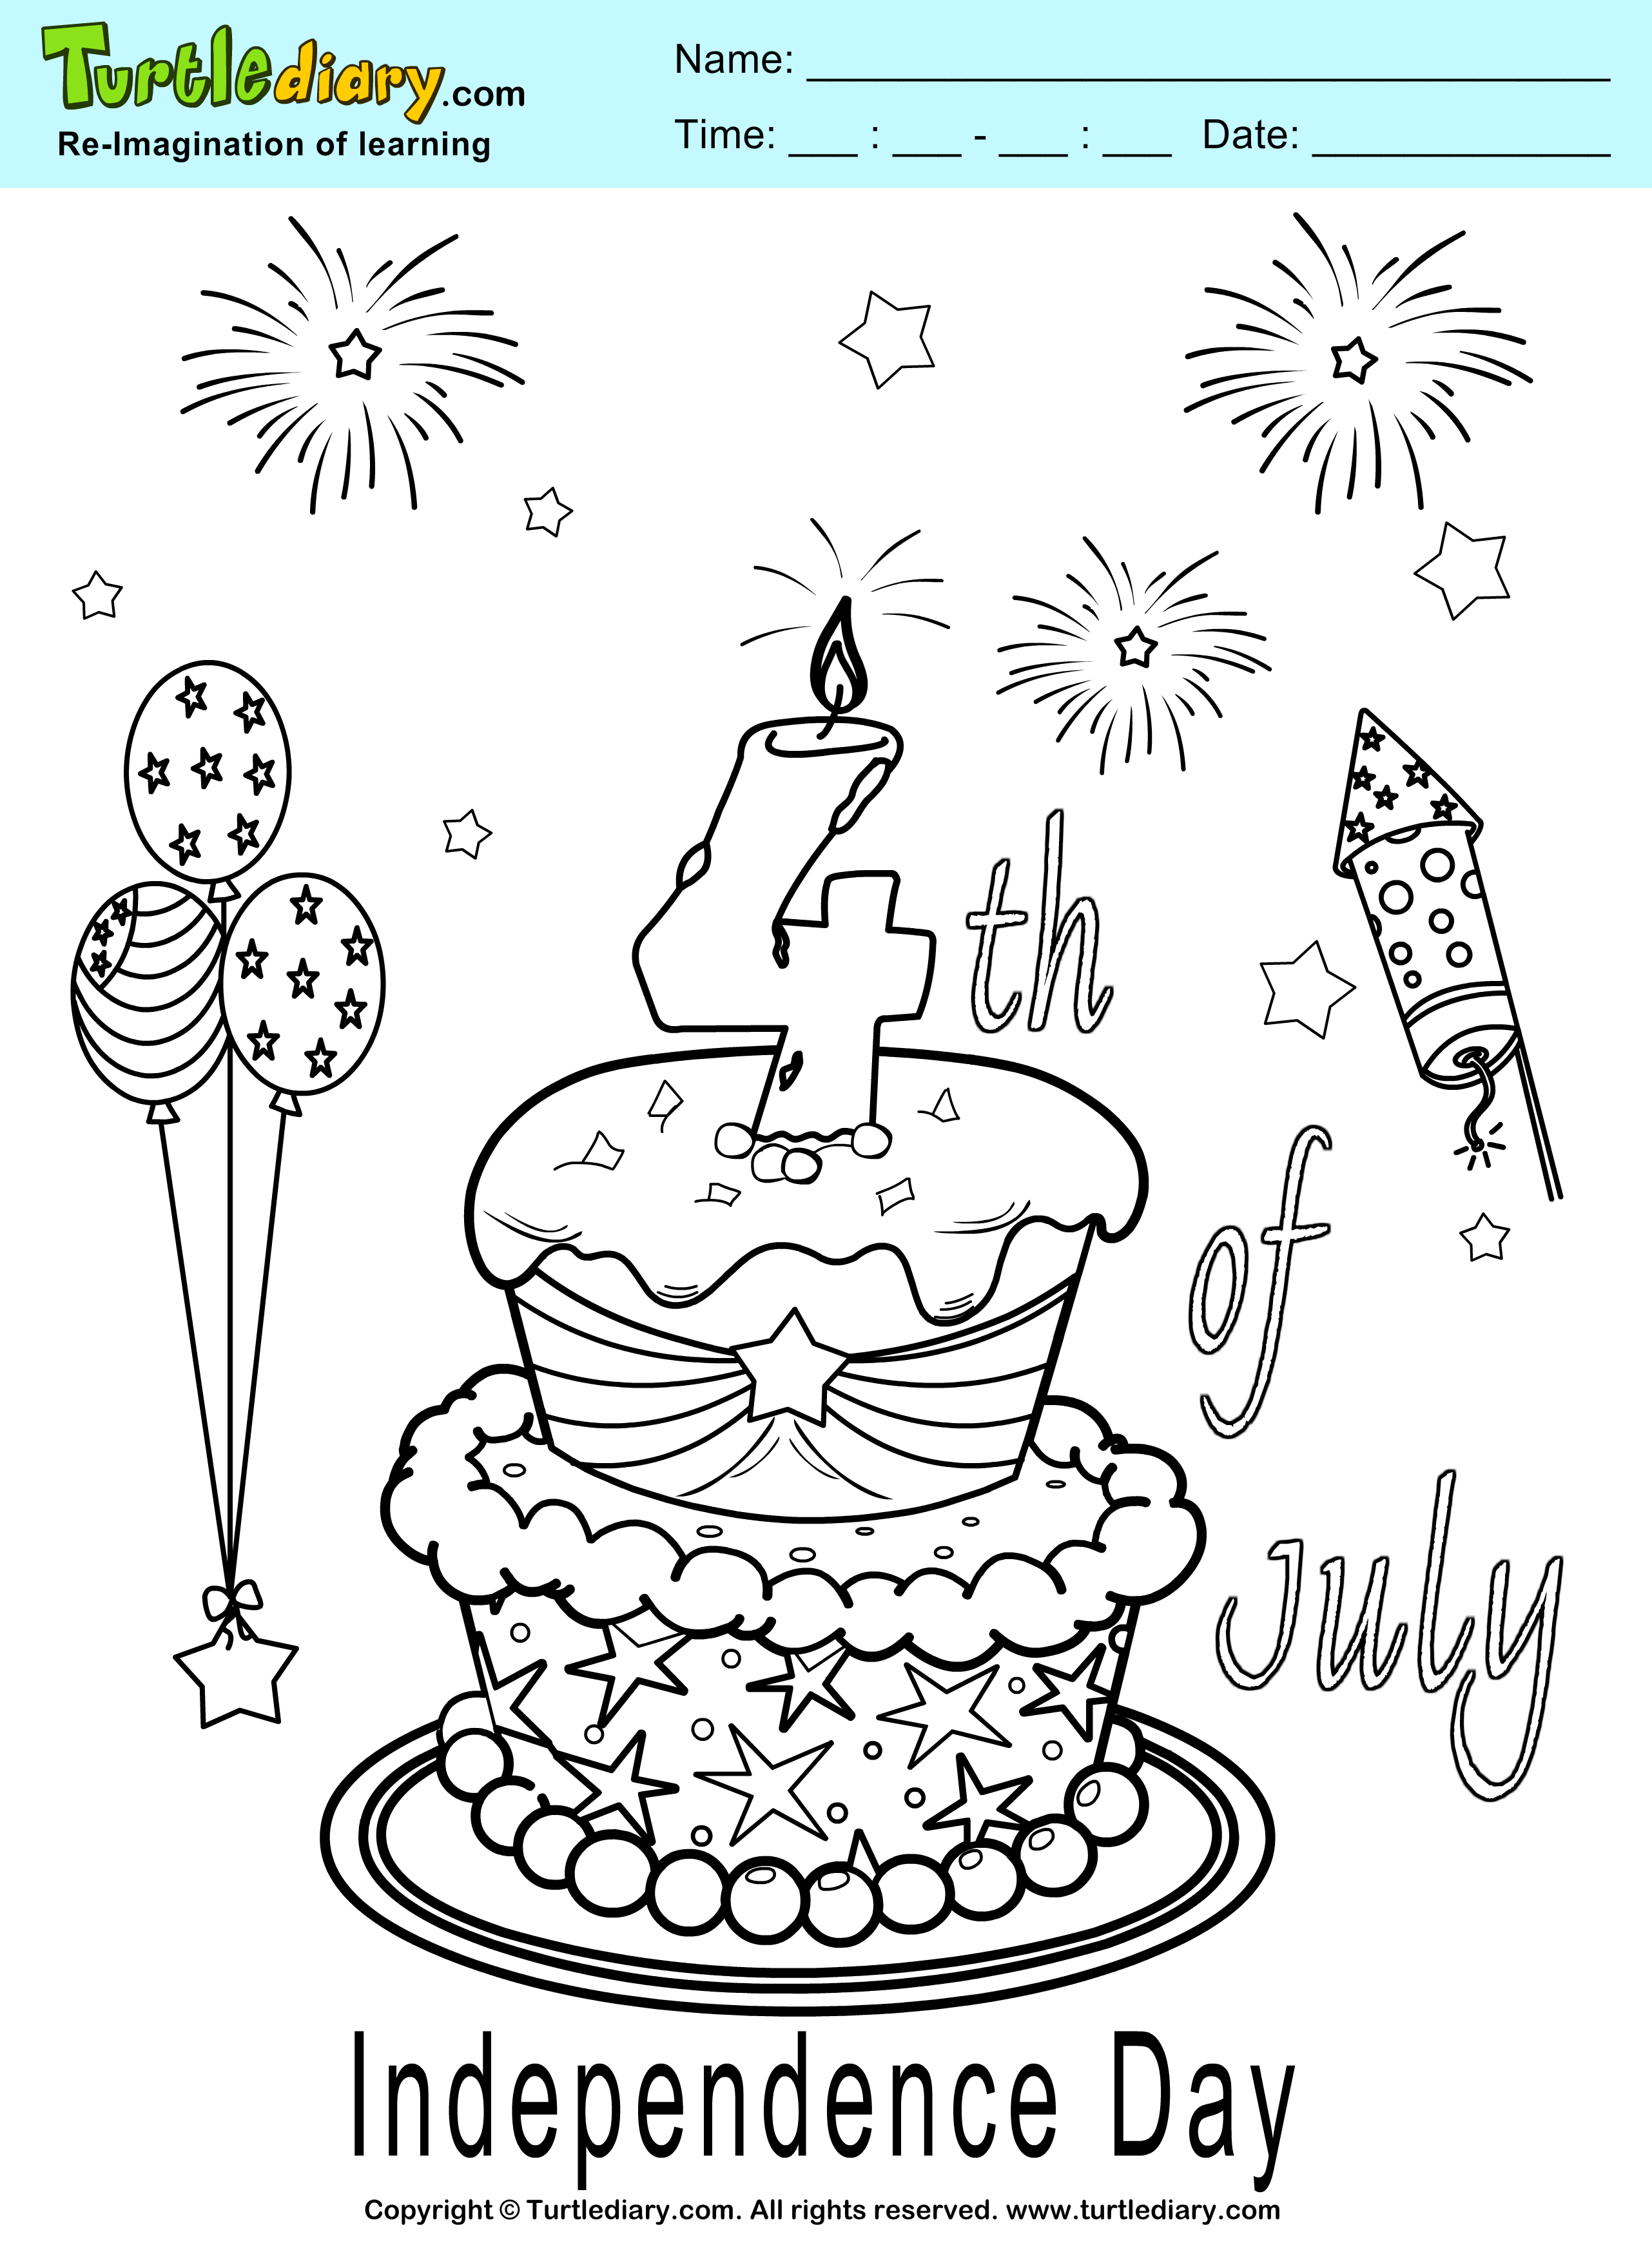 Independence Day Cake Coloring Page